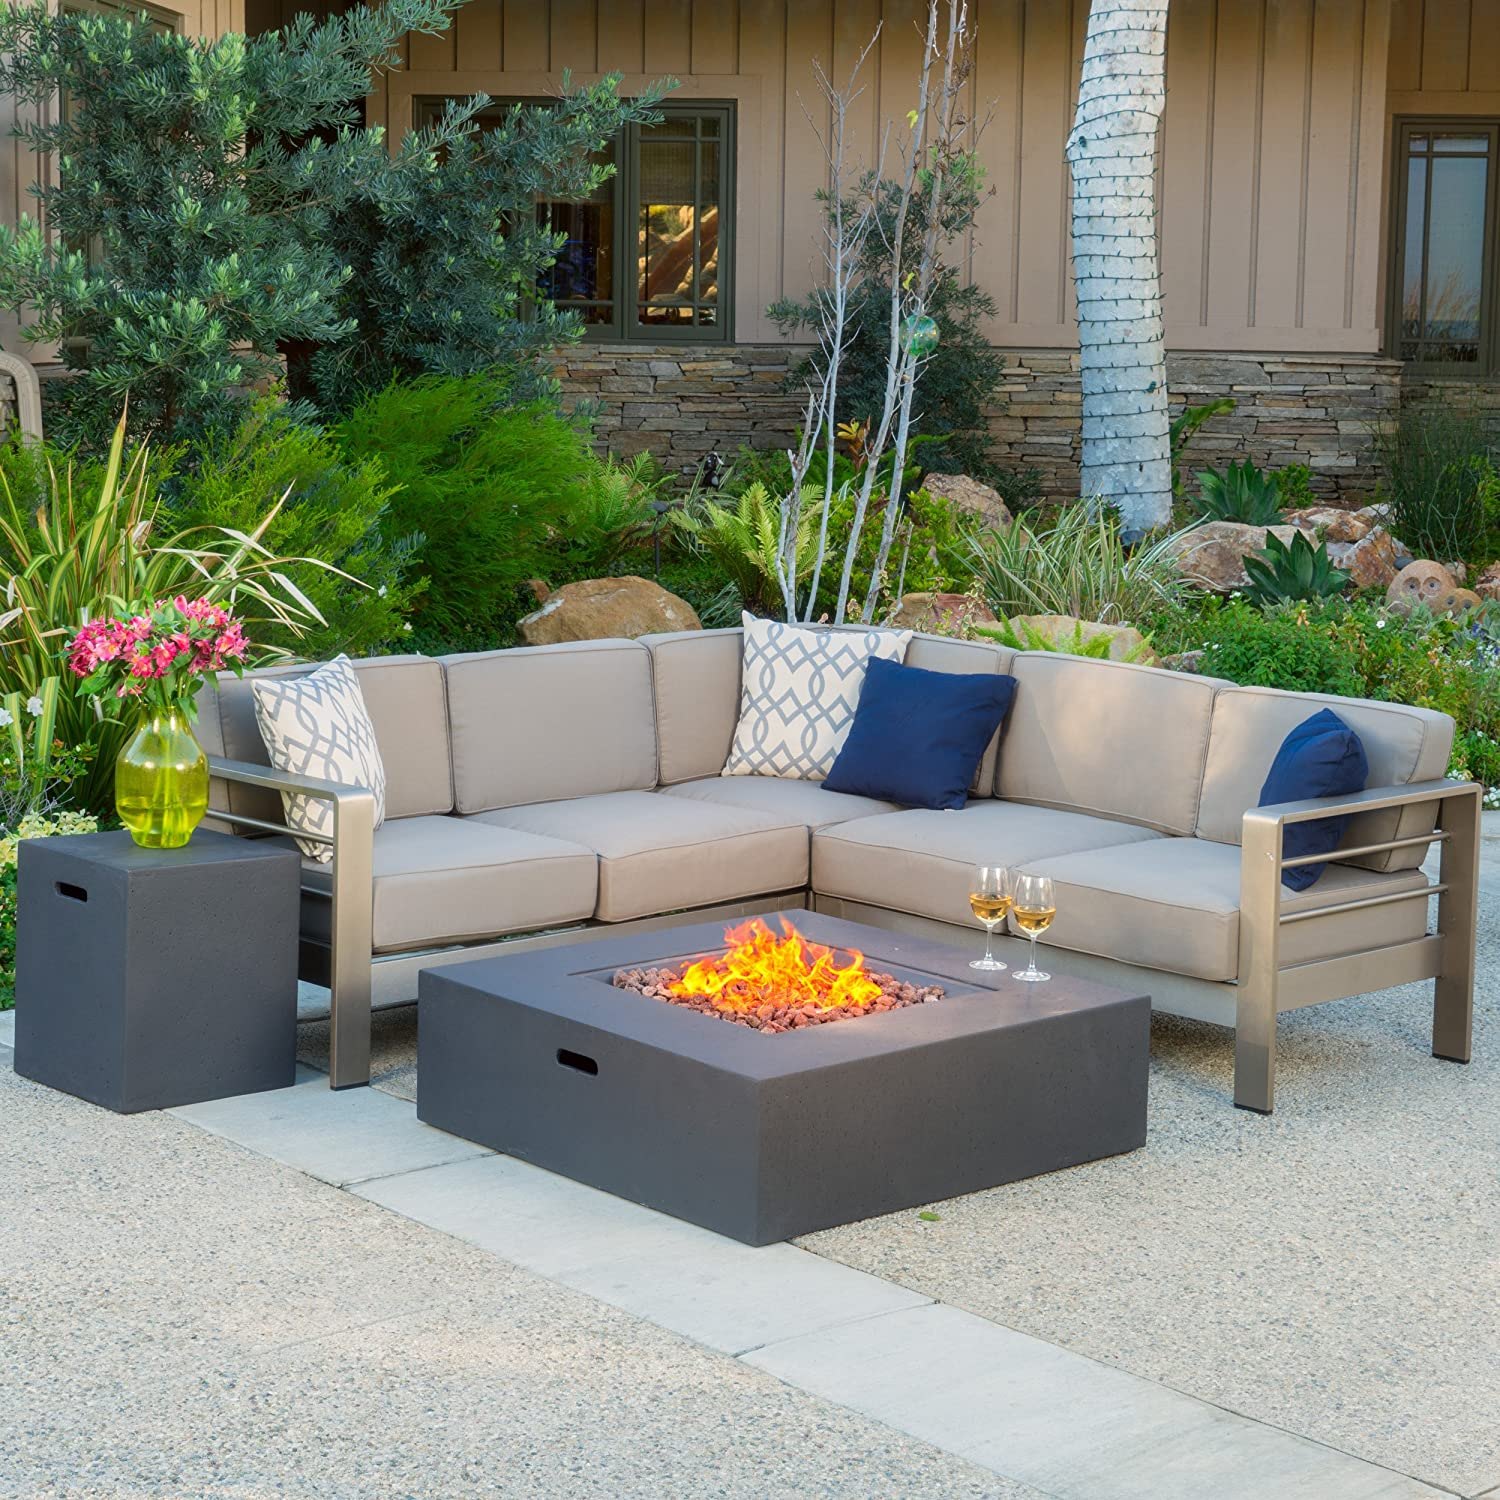 Amazon.com: Crested Bay | Outdoor Aluminum Sectional Sofa Set with ...